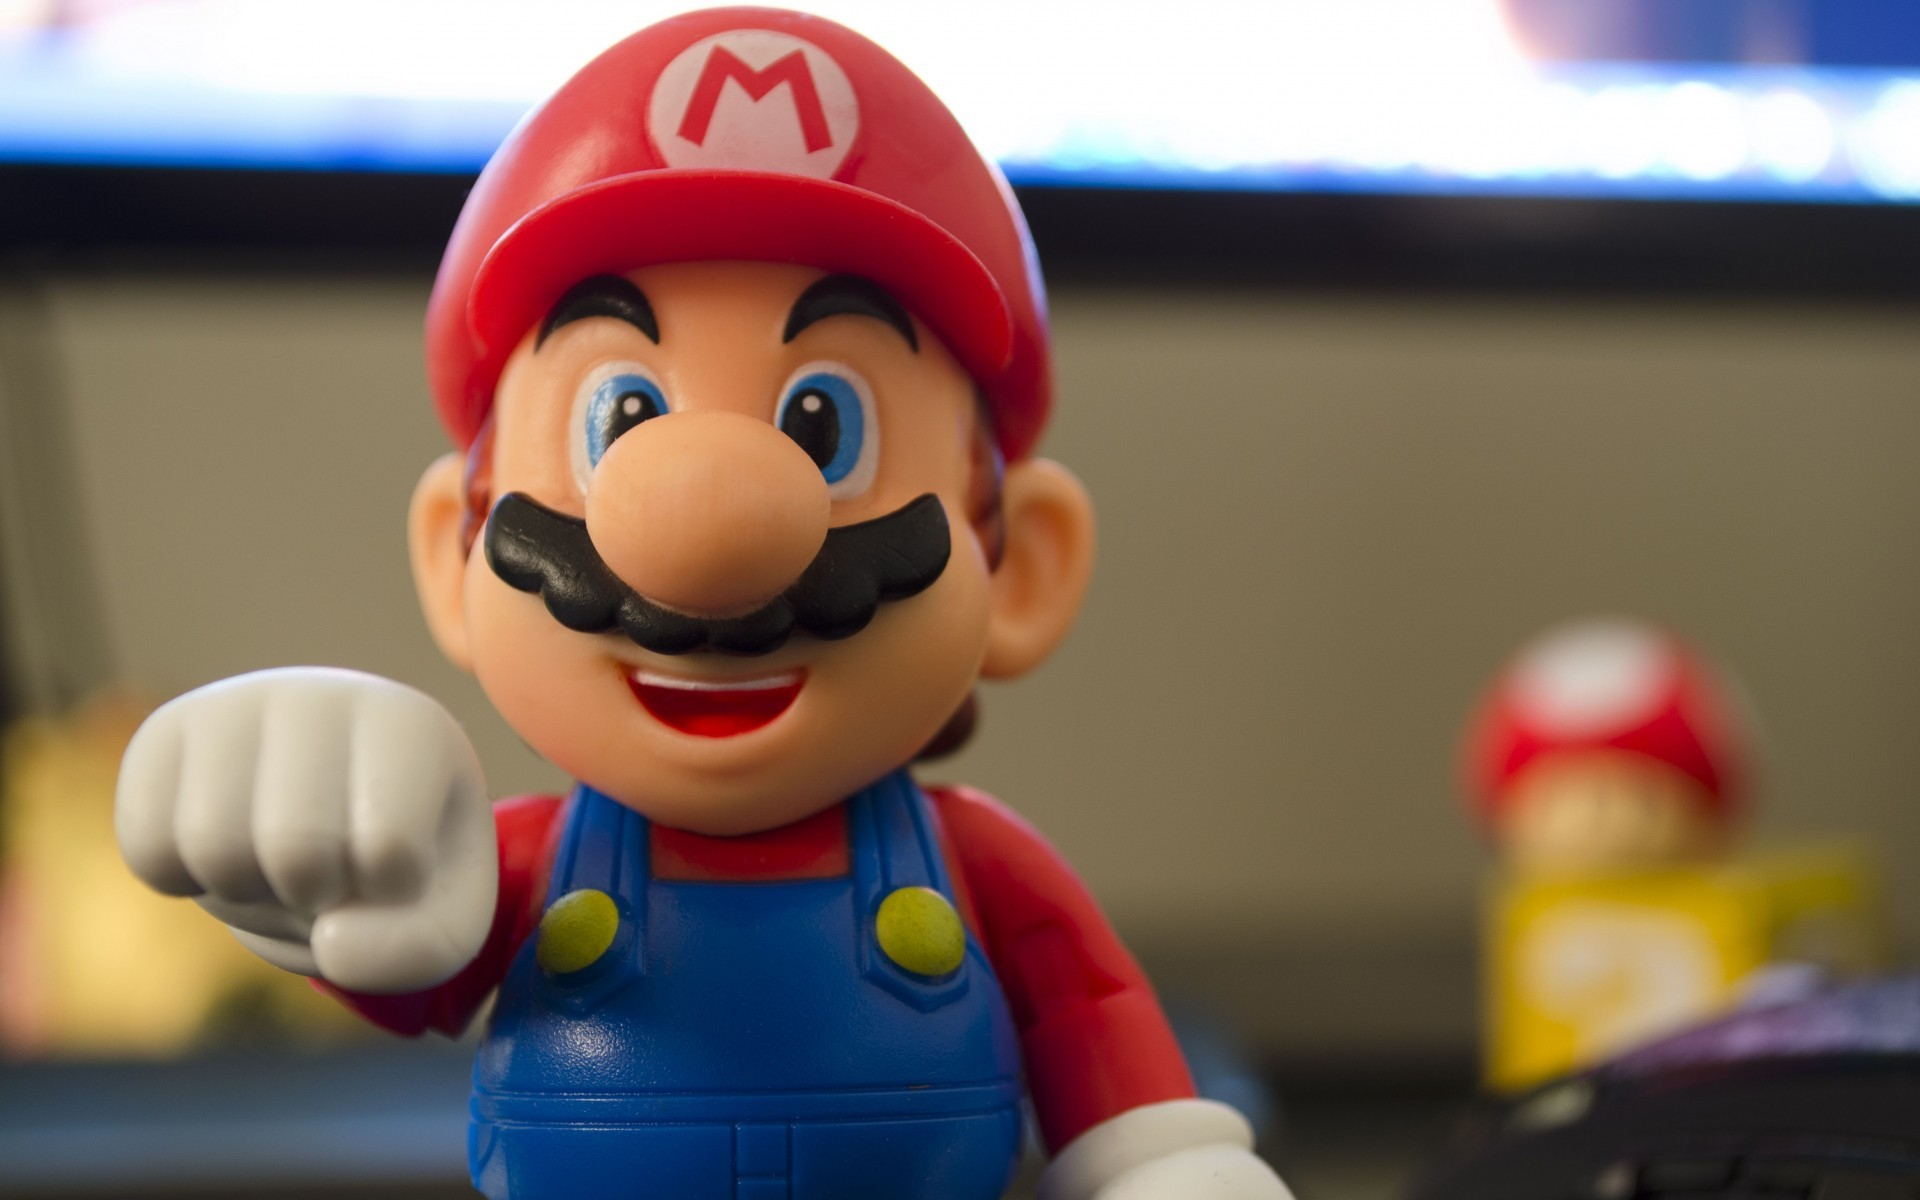 The figure of the hero of the game Super Mario Bros